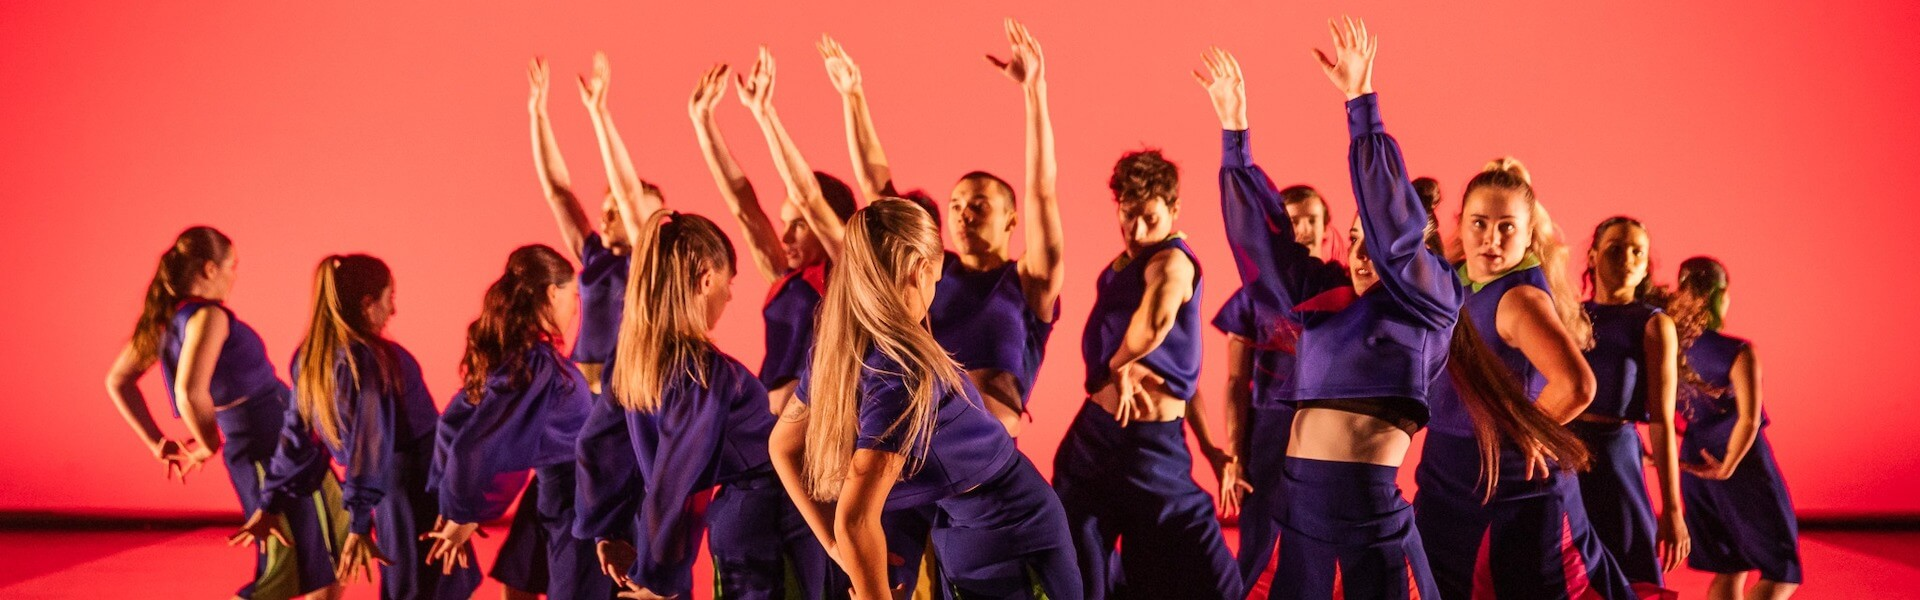 A group dressed in purple dance across an orange background